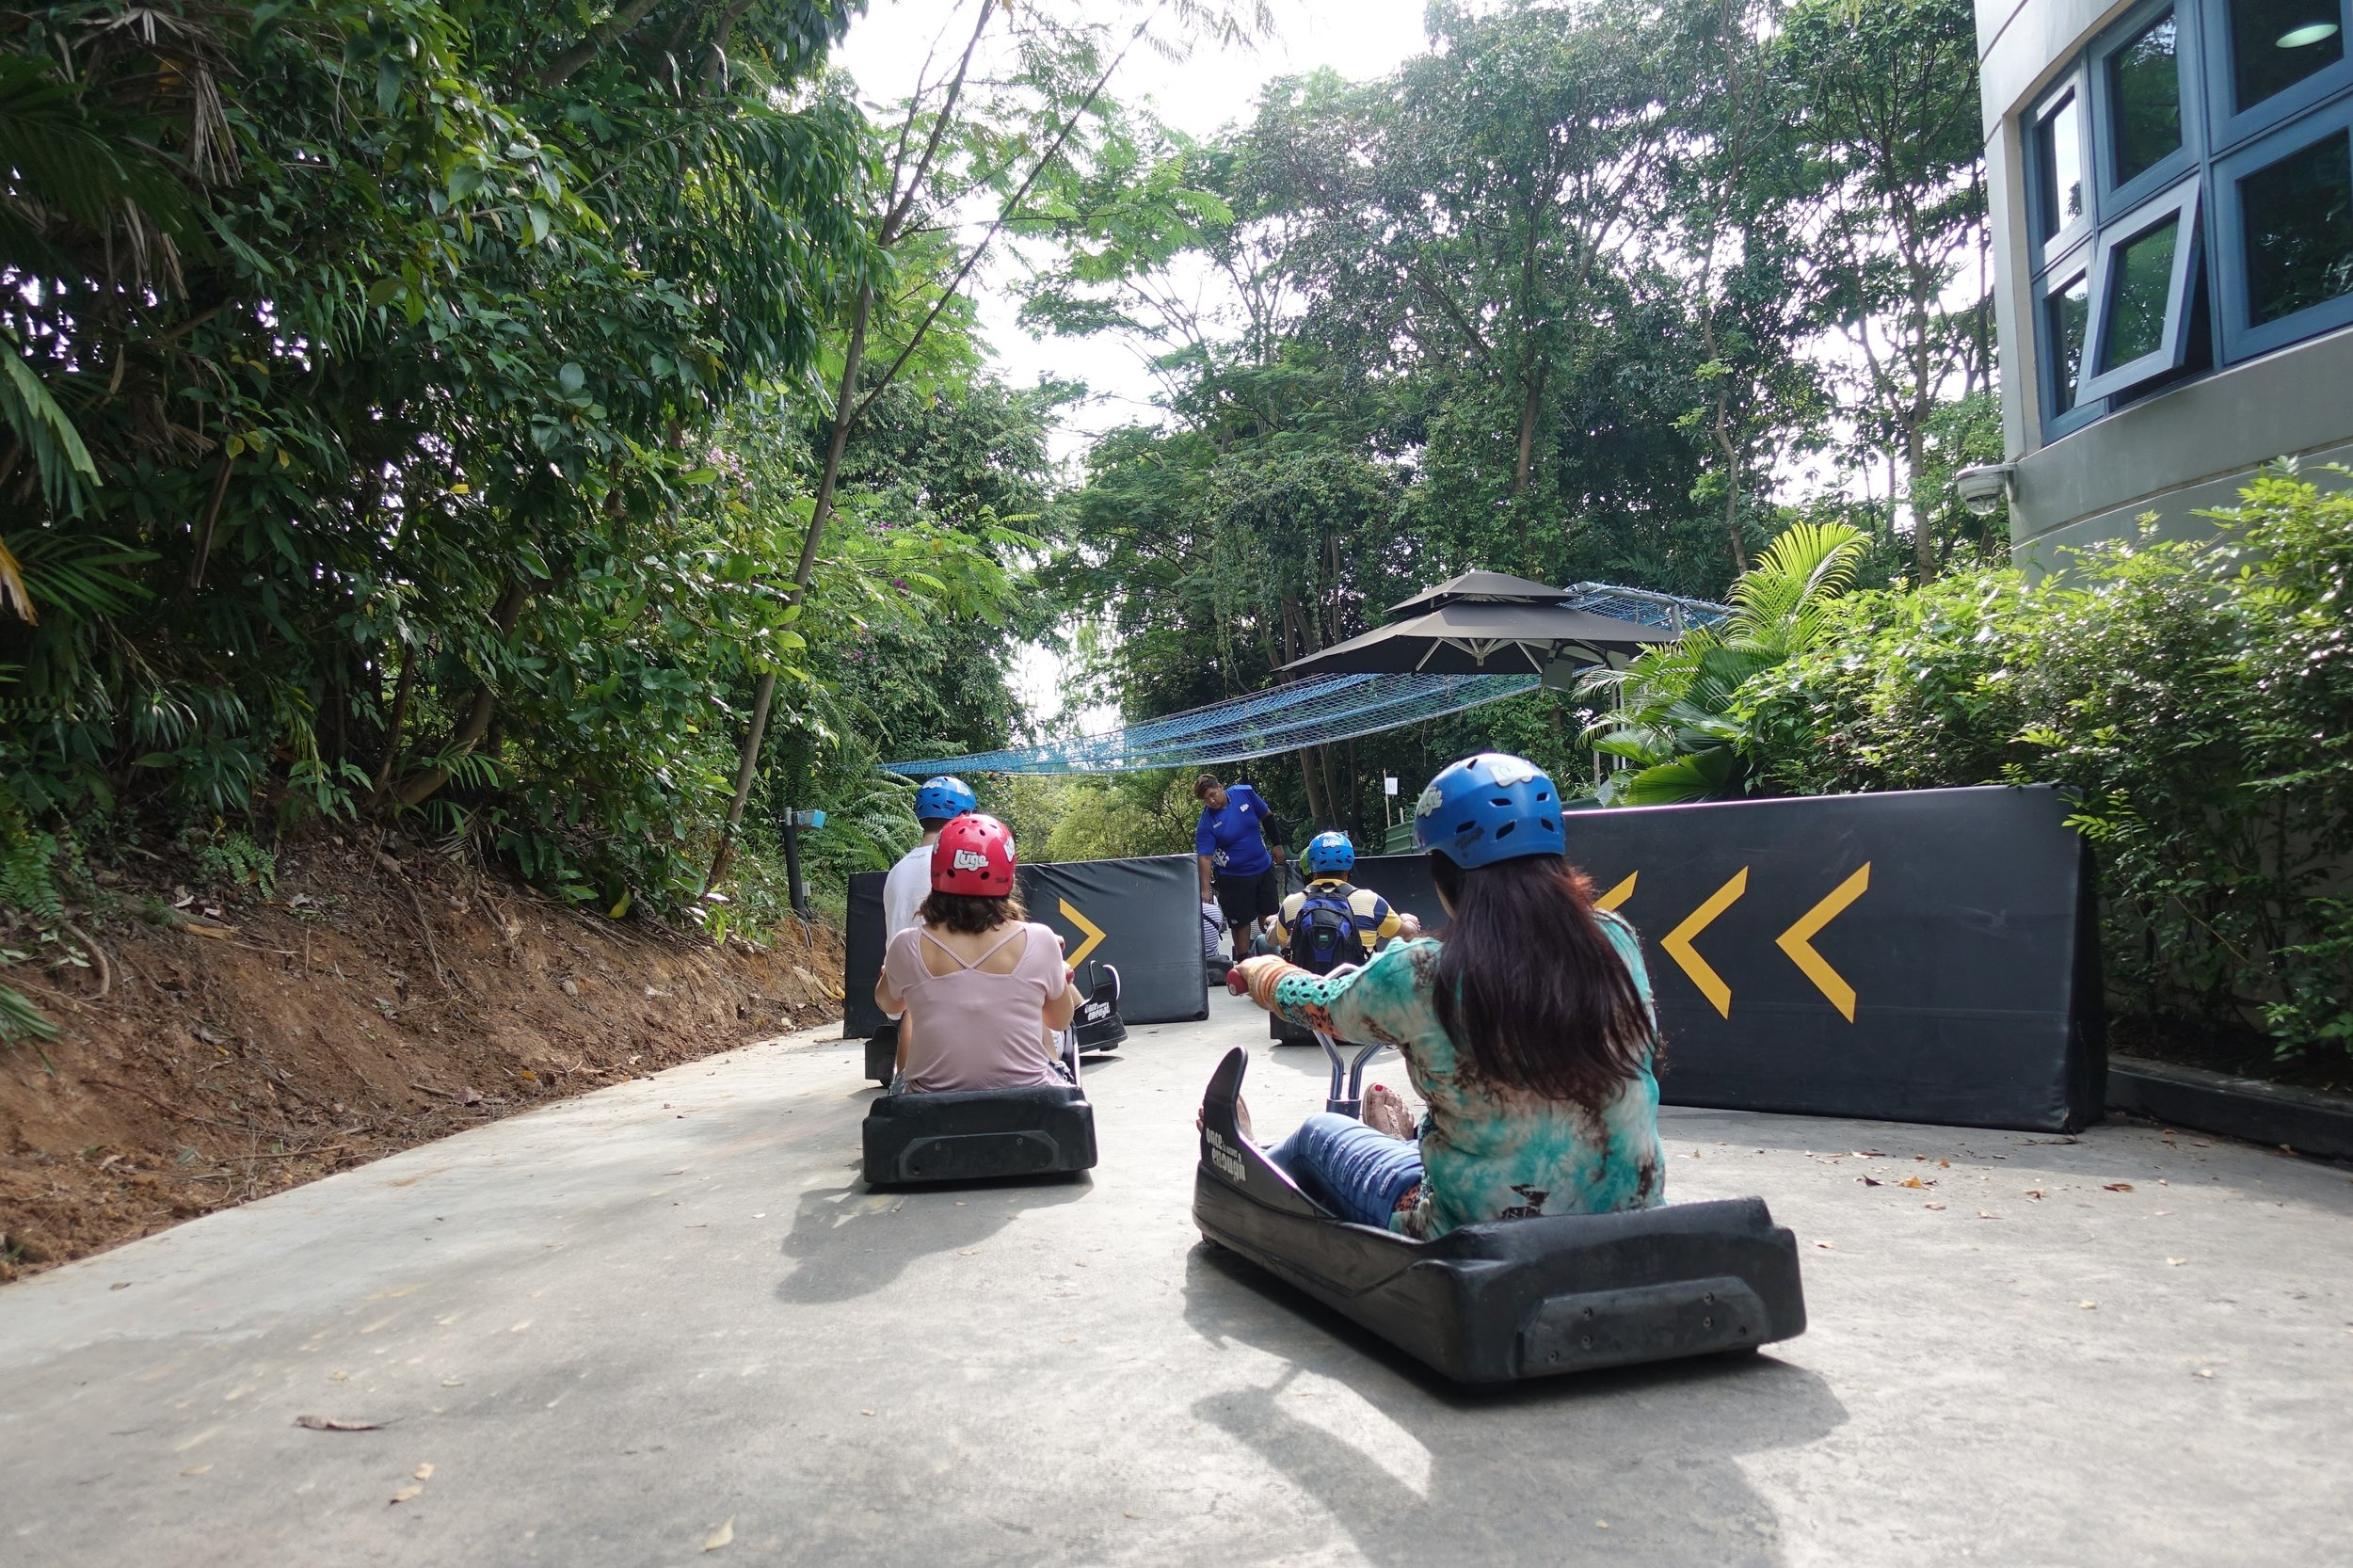 Getting ready to take the luge down!